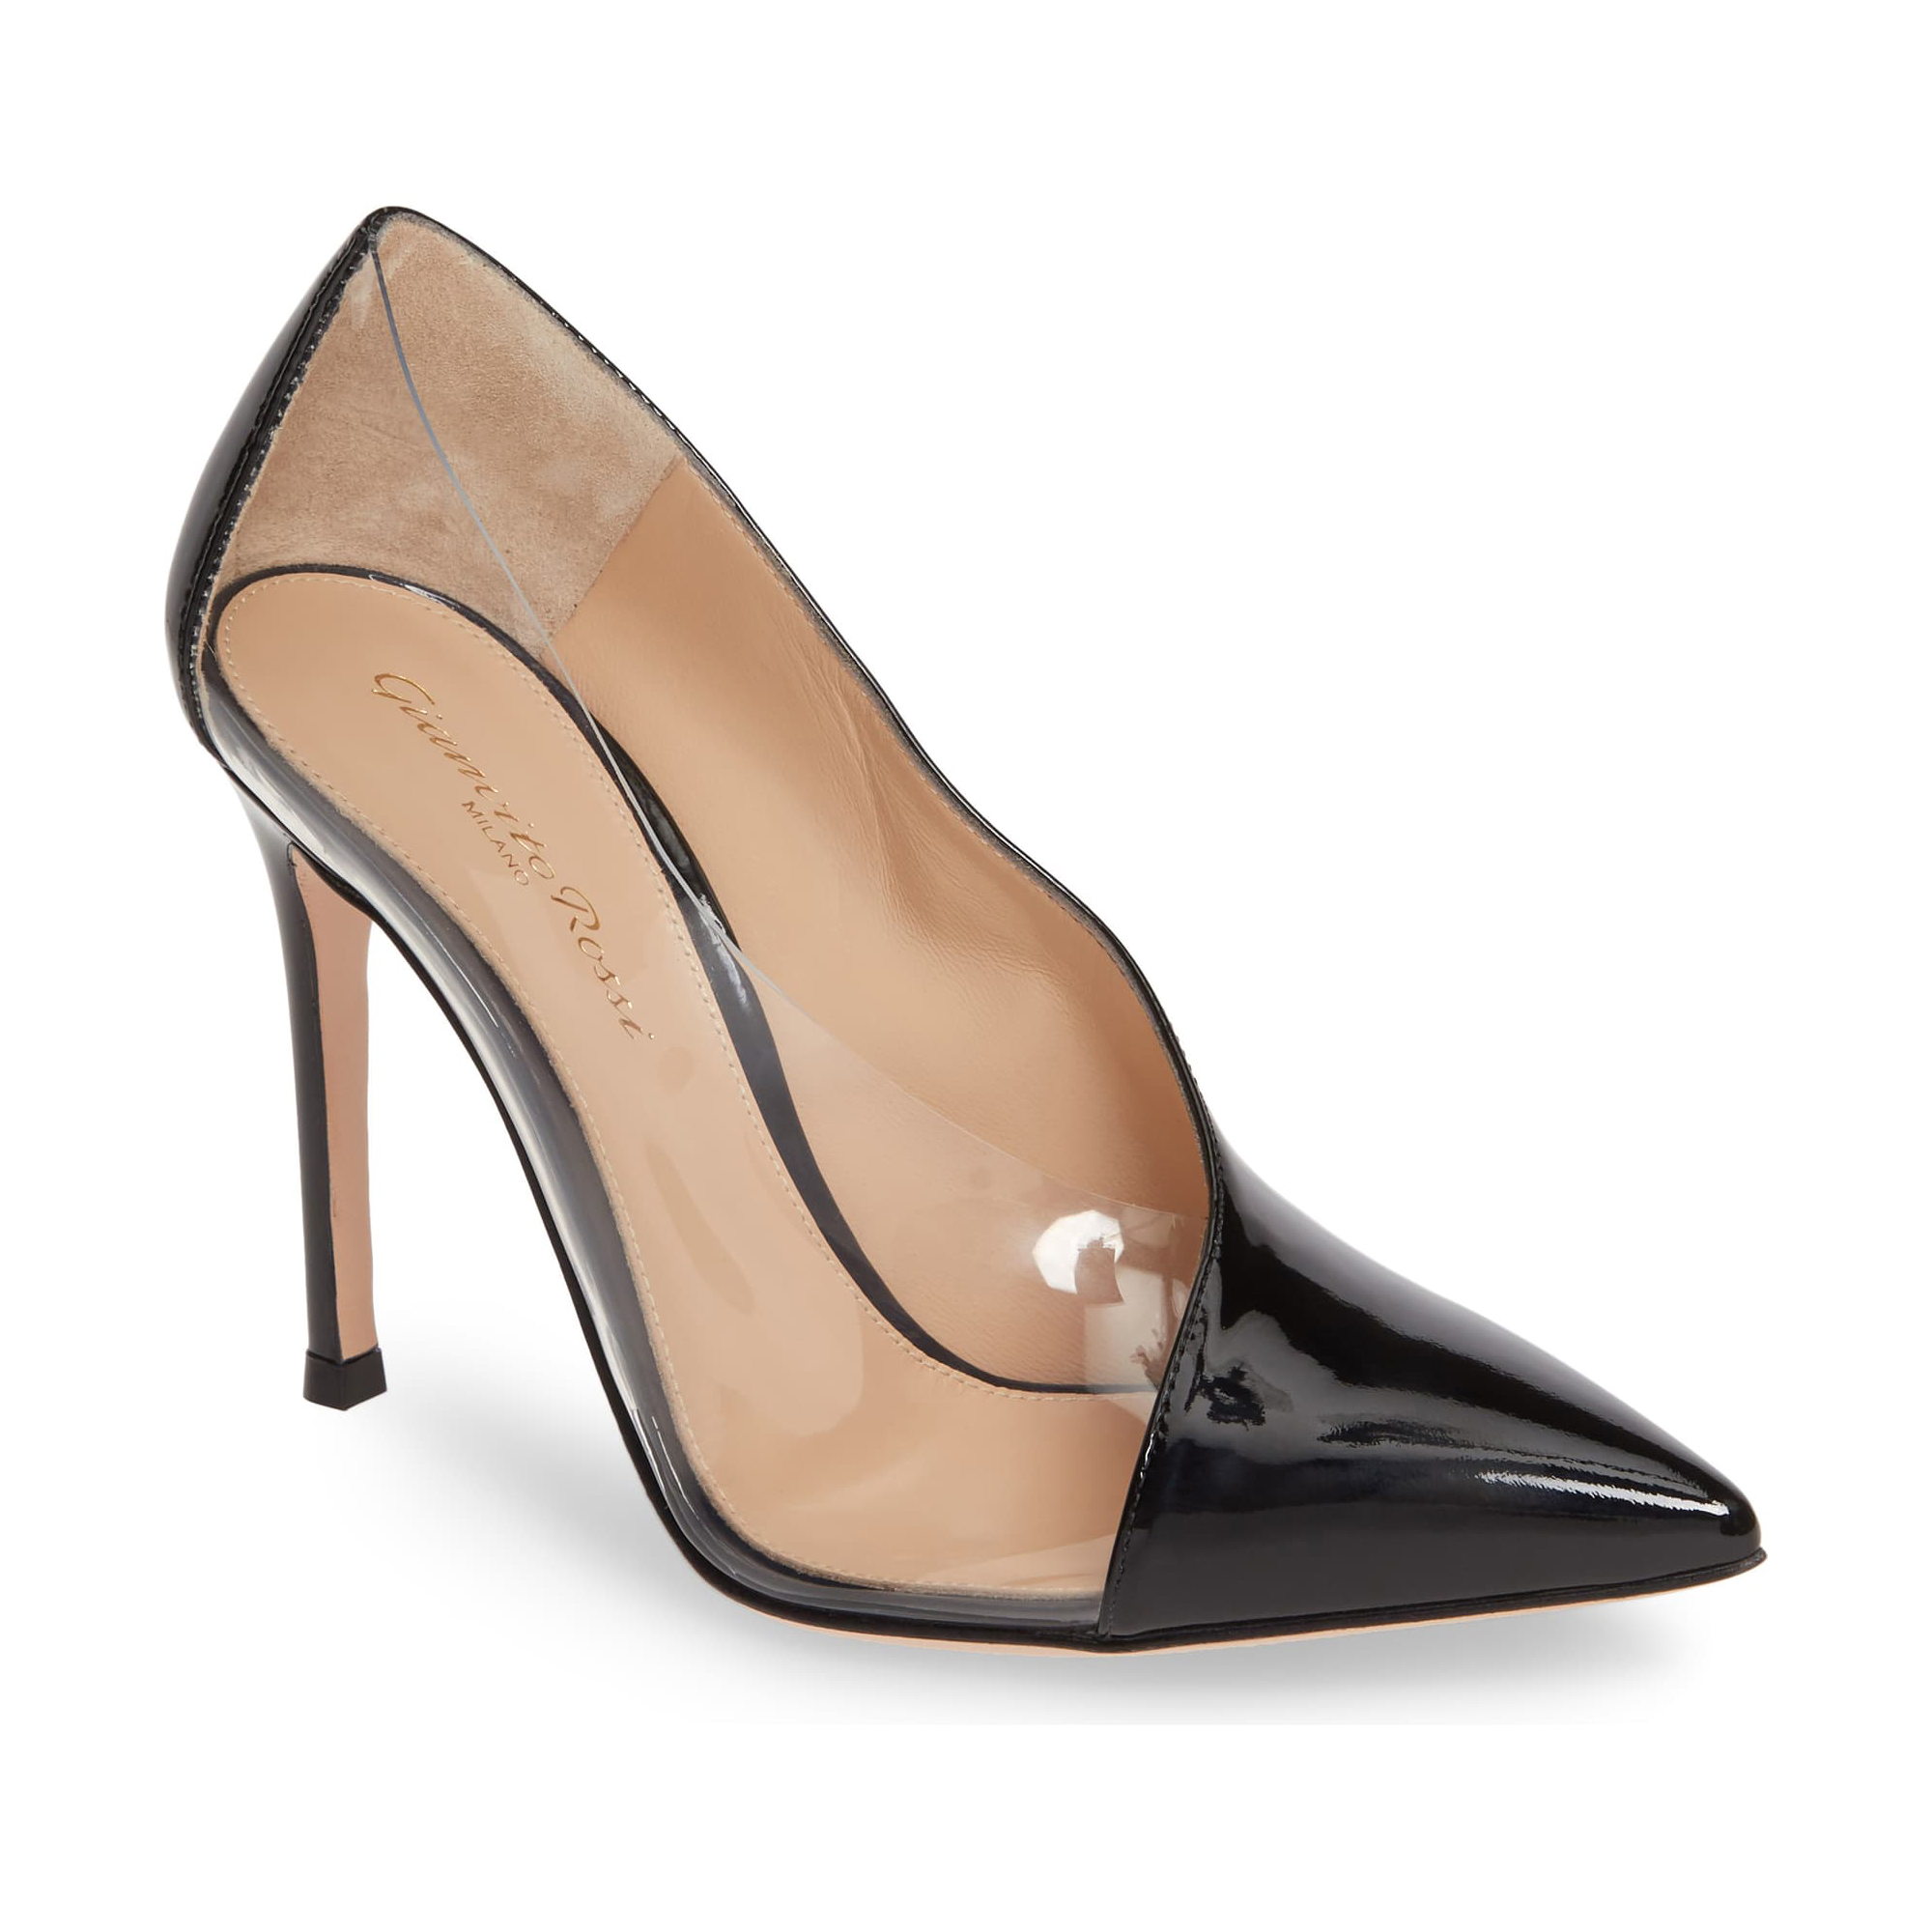 Gianvito Rossi Clear Sided Pump